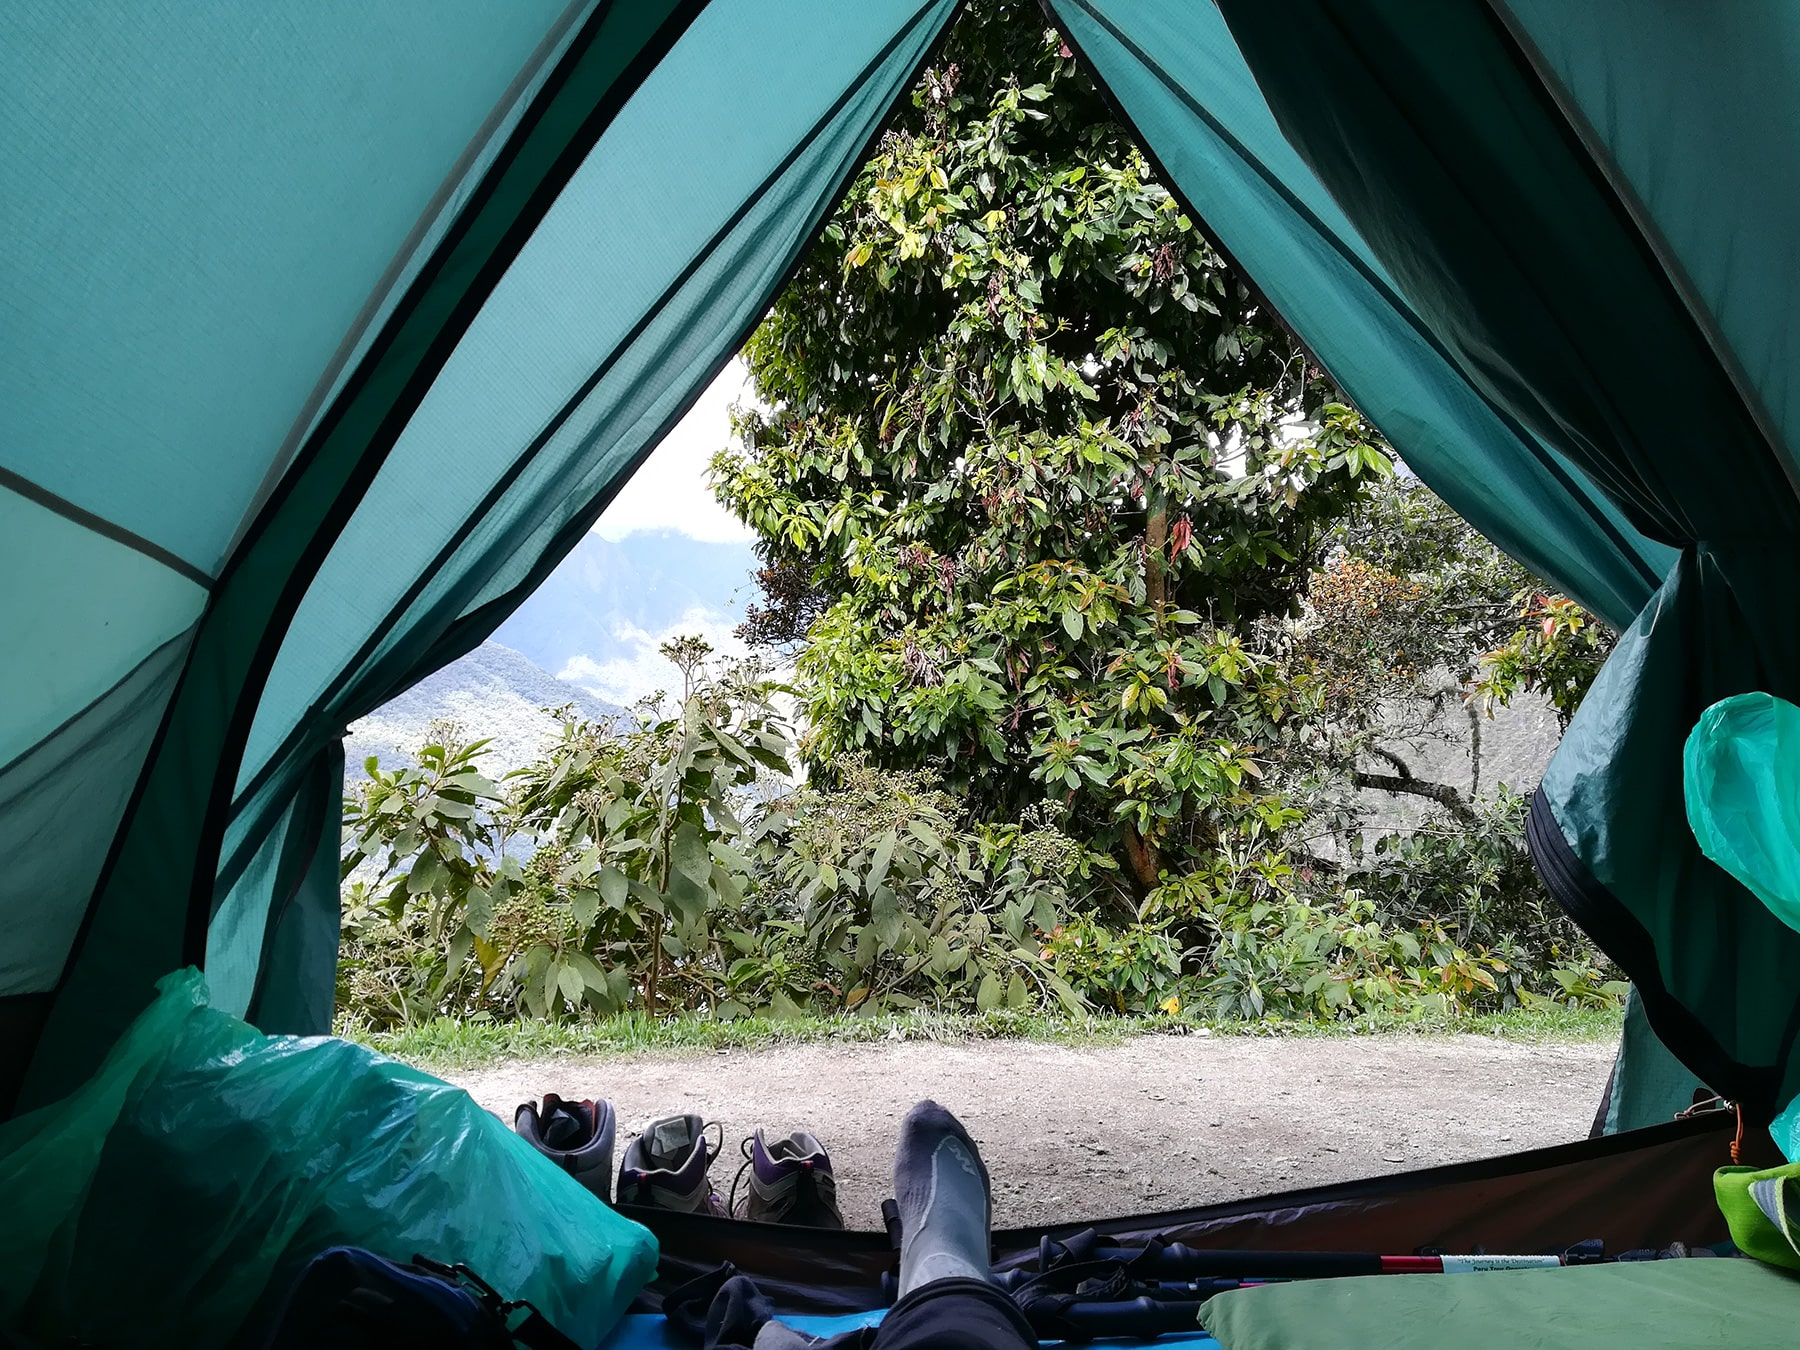 Tent with a view on mountains on 2nd day inca trail